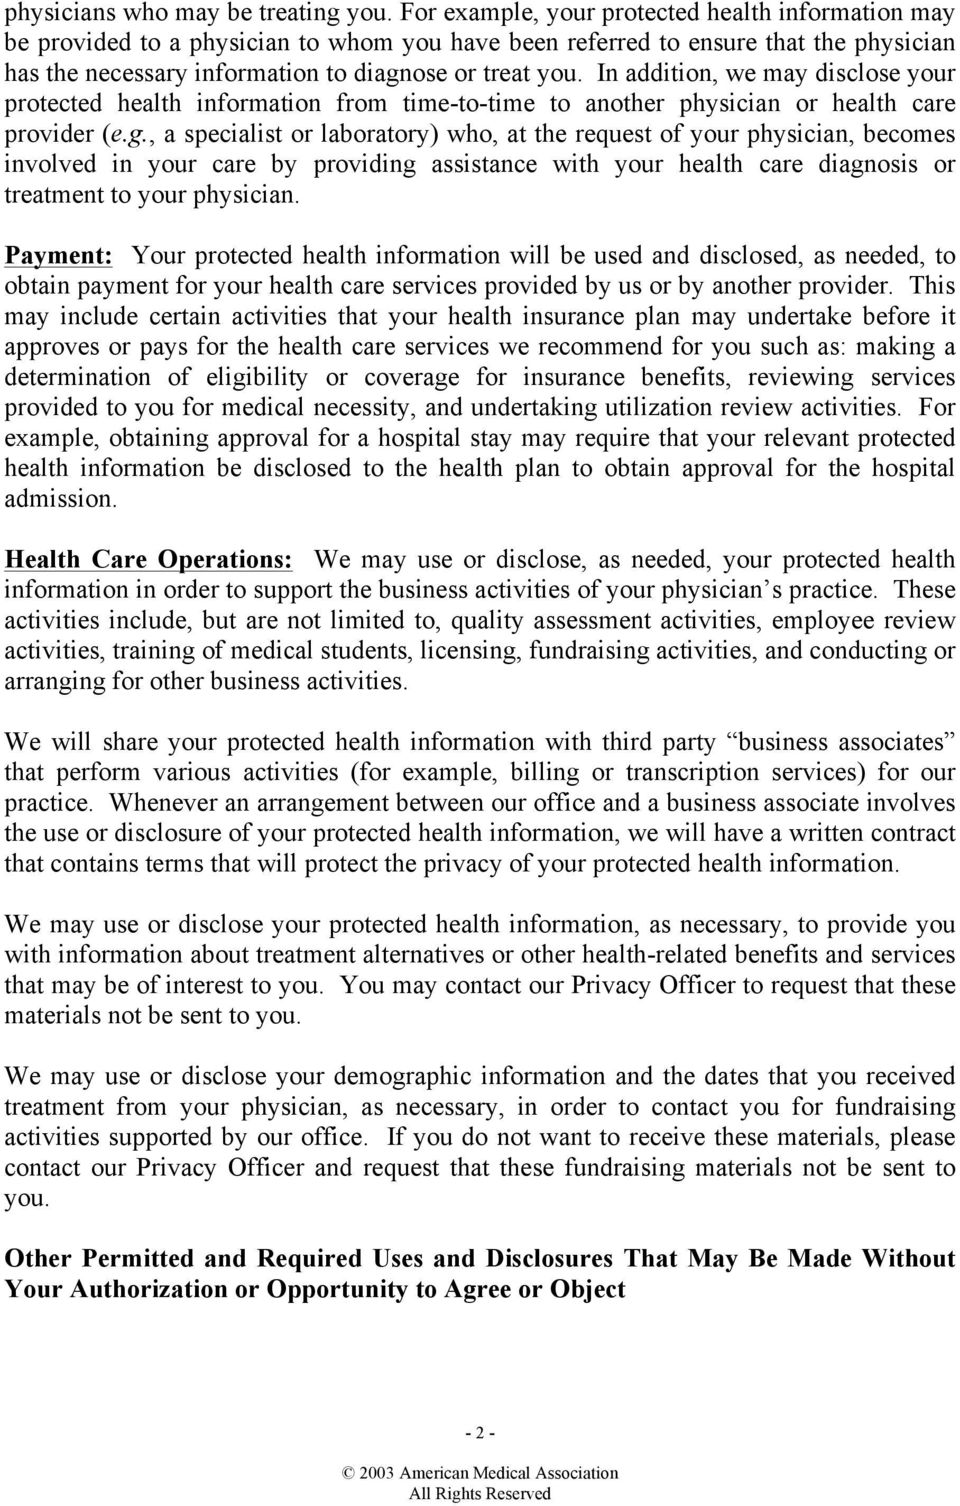 In addition, we may disclose your protected health information from time-to-time to another physician or health care provider (e.g.